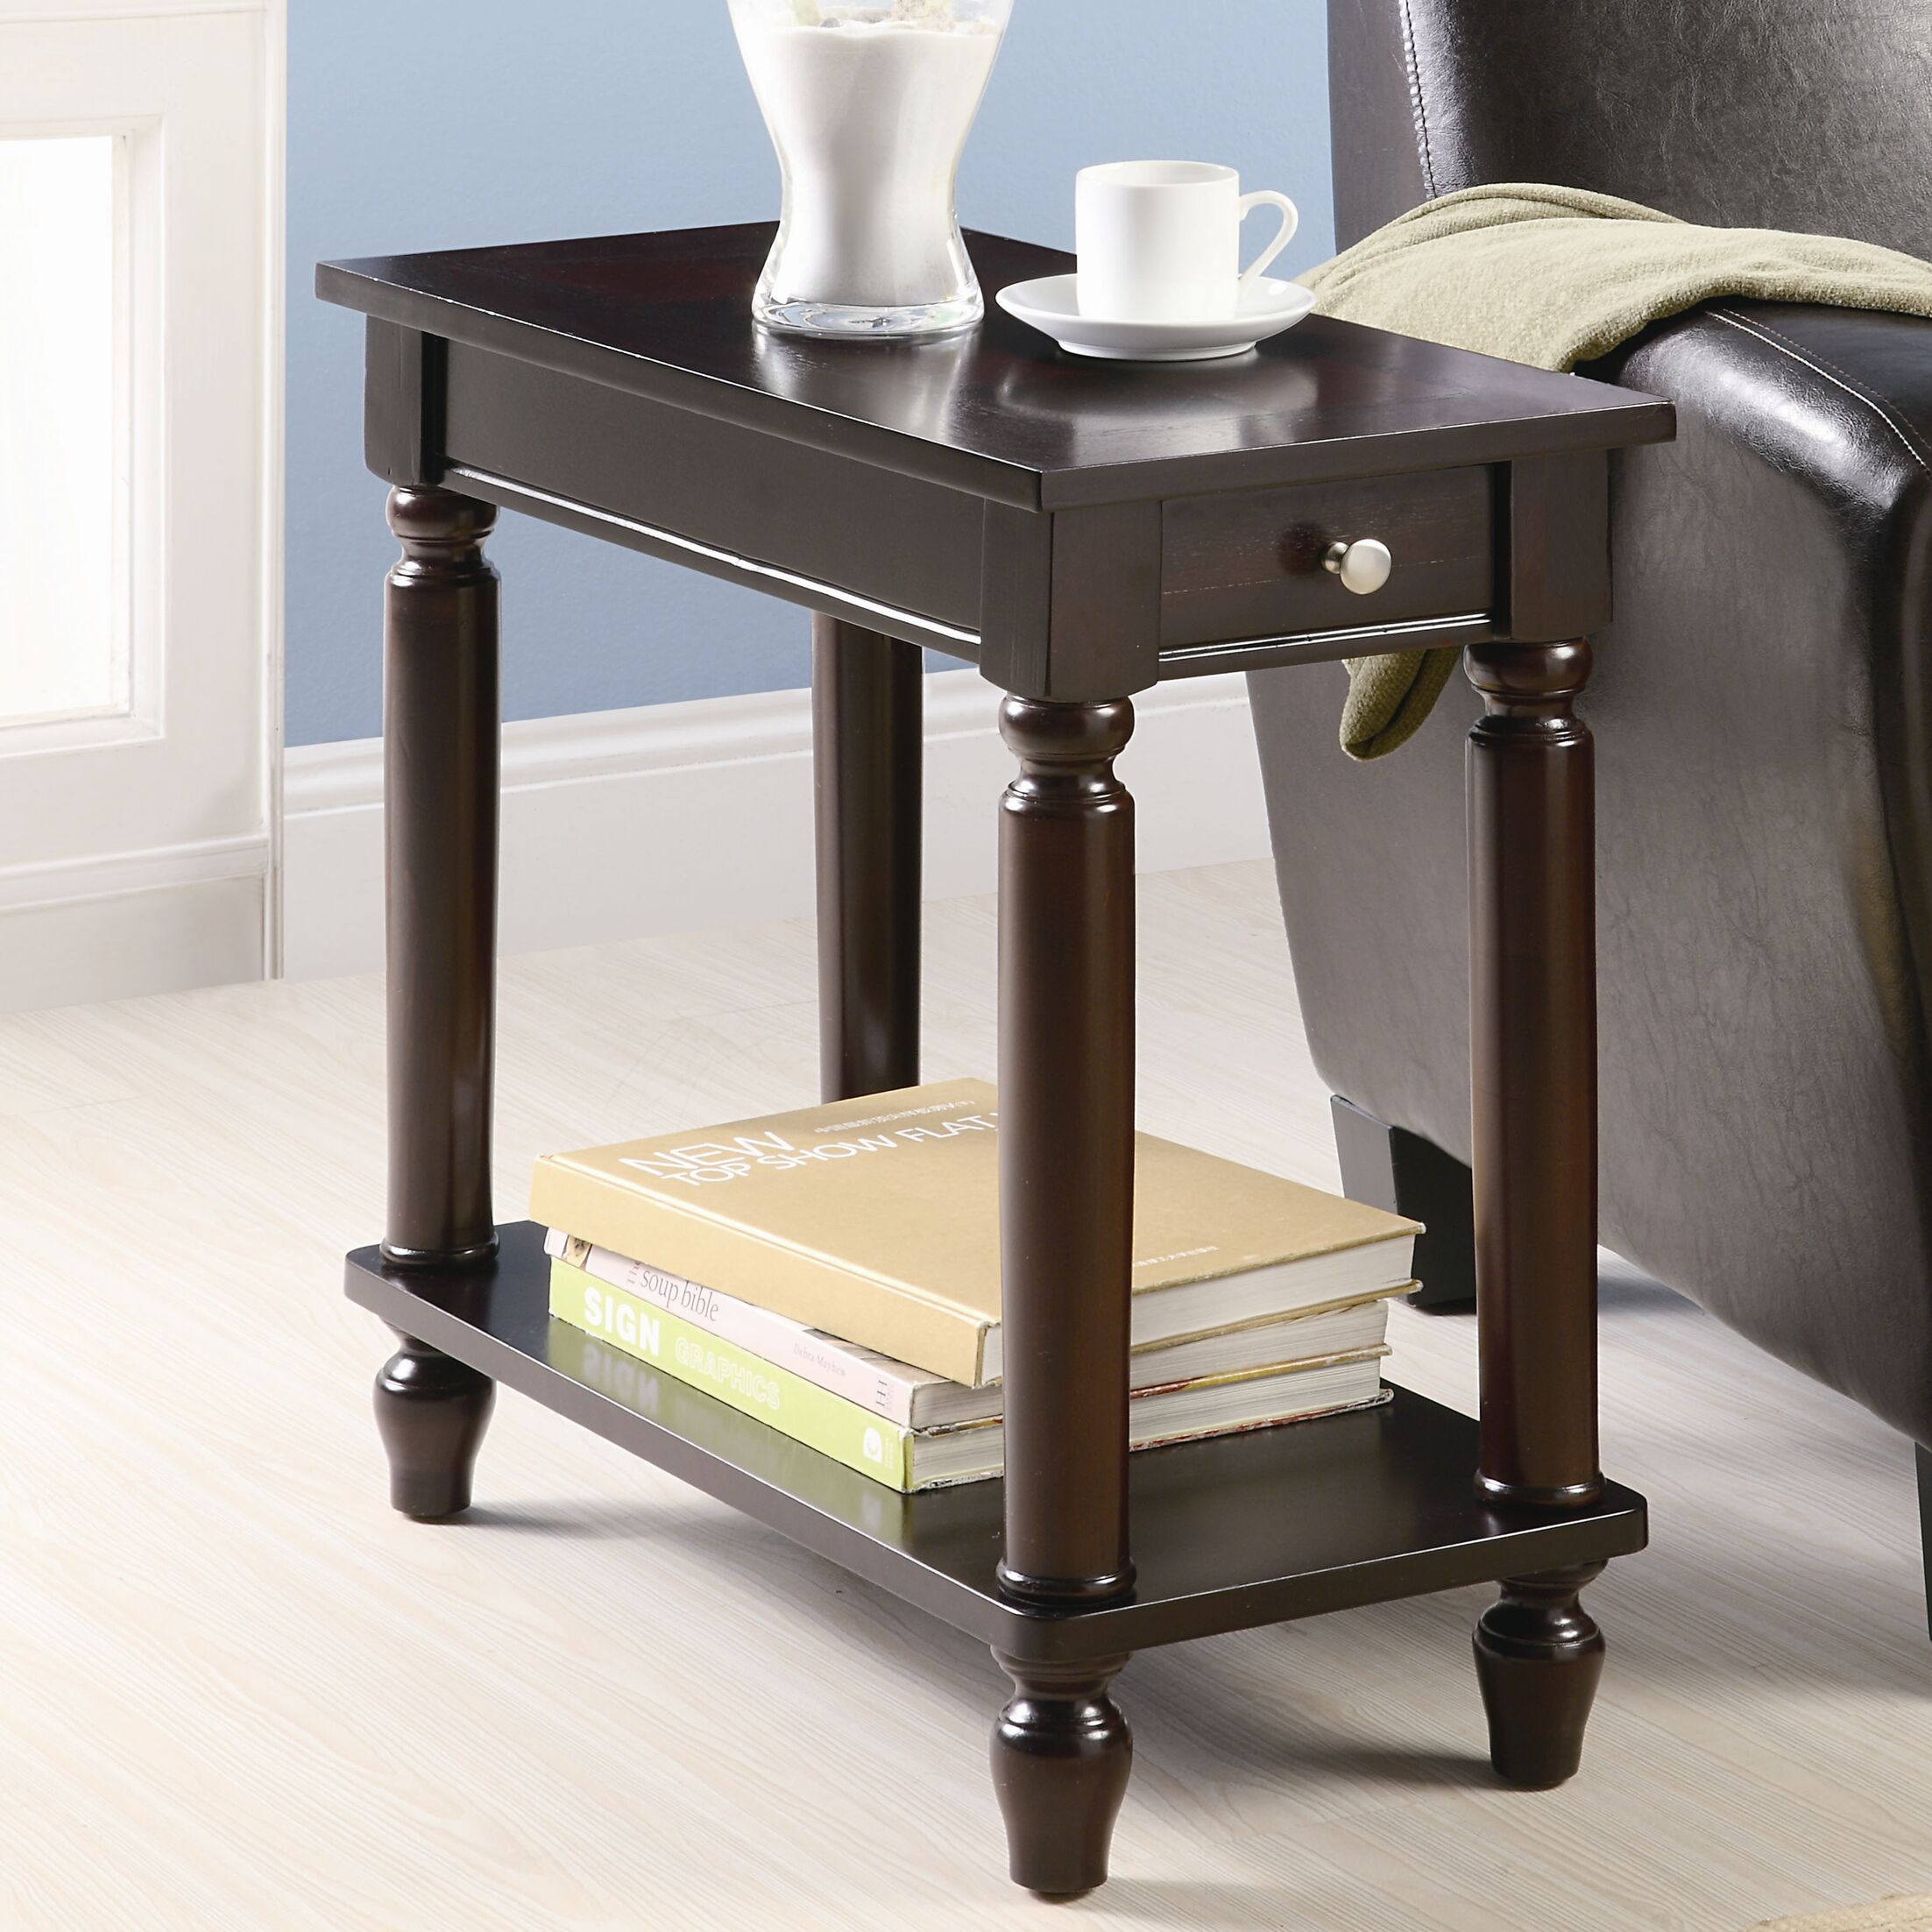 Louis End Table With Storage